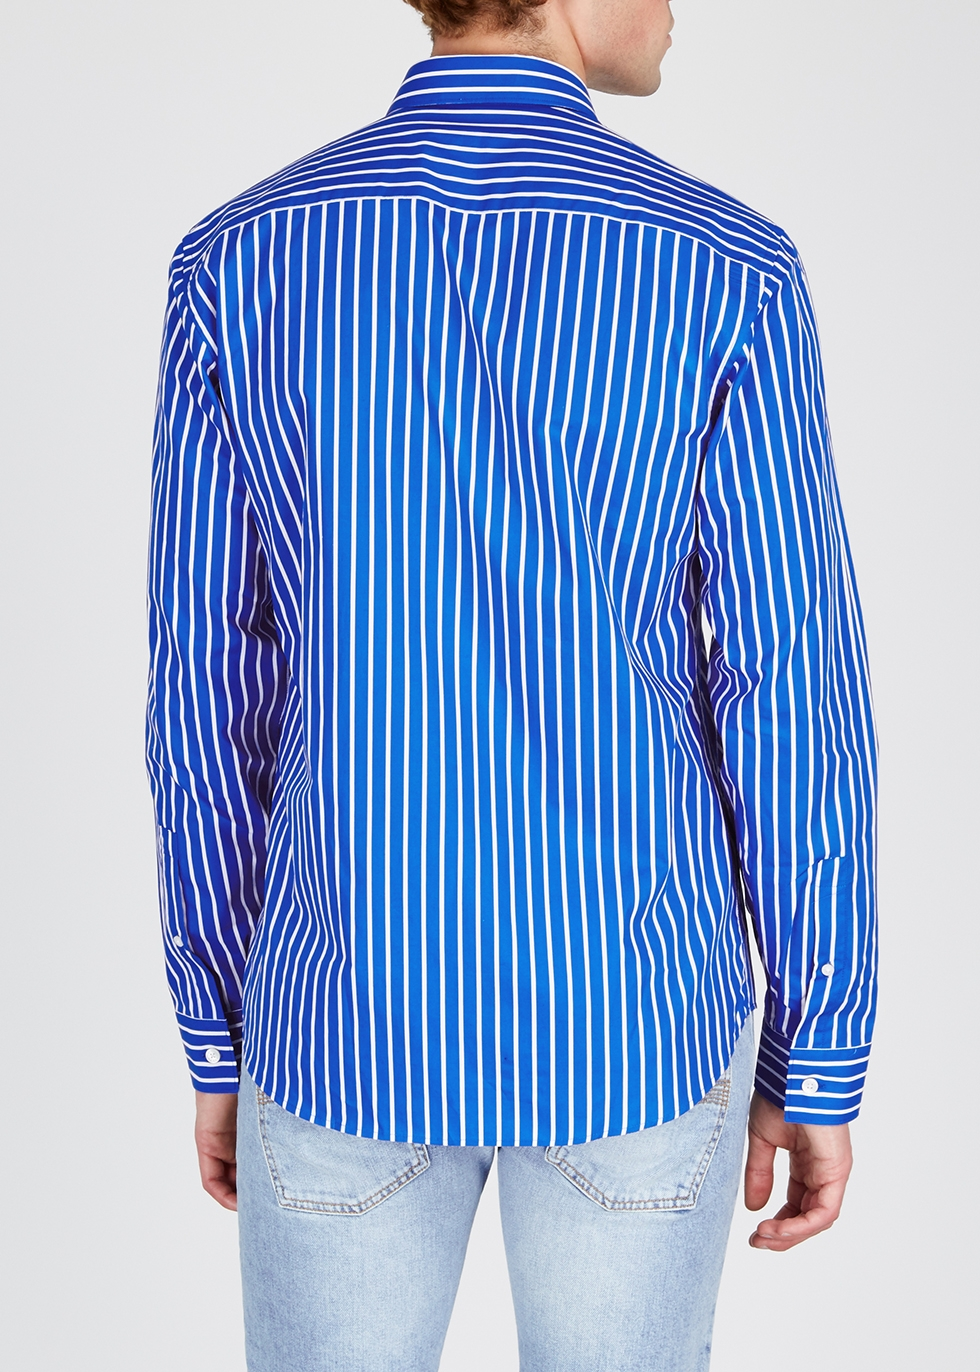 Blue striped cotton shirt - Kenzo